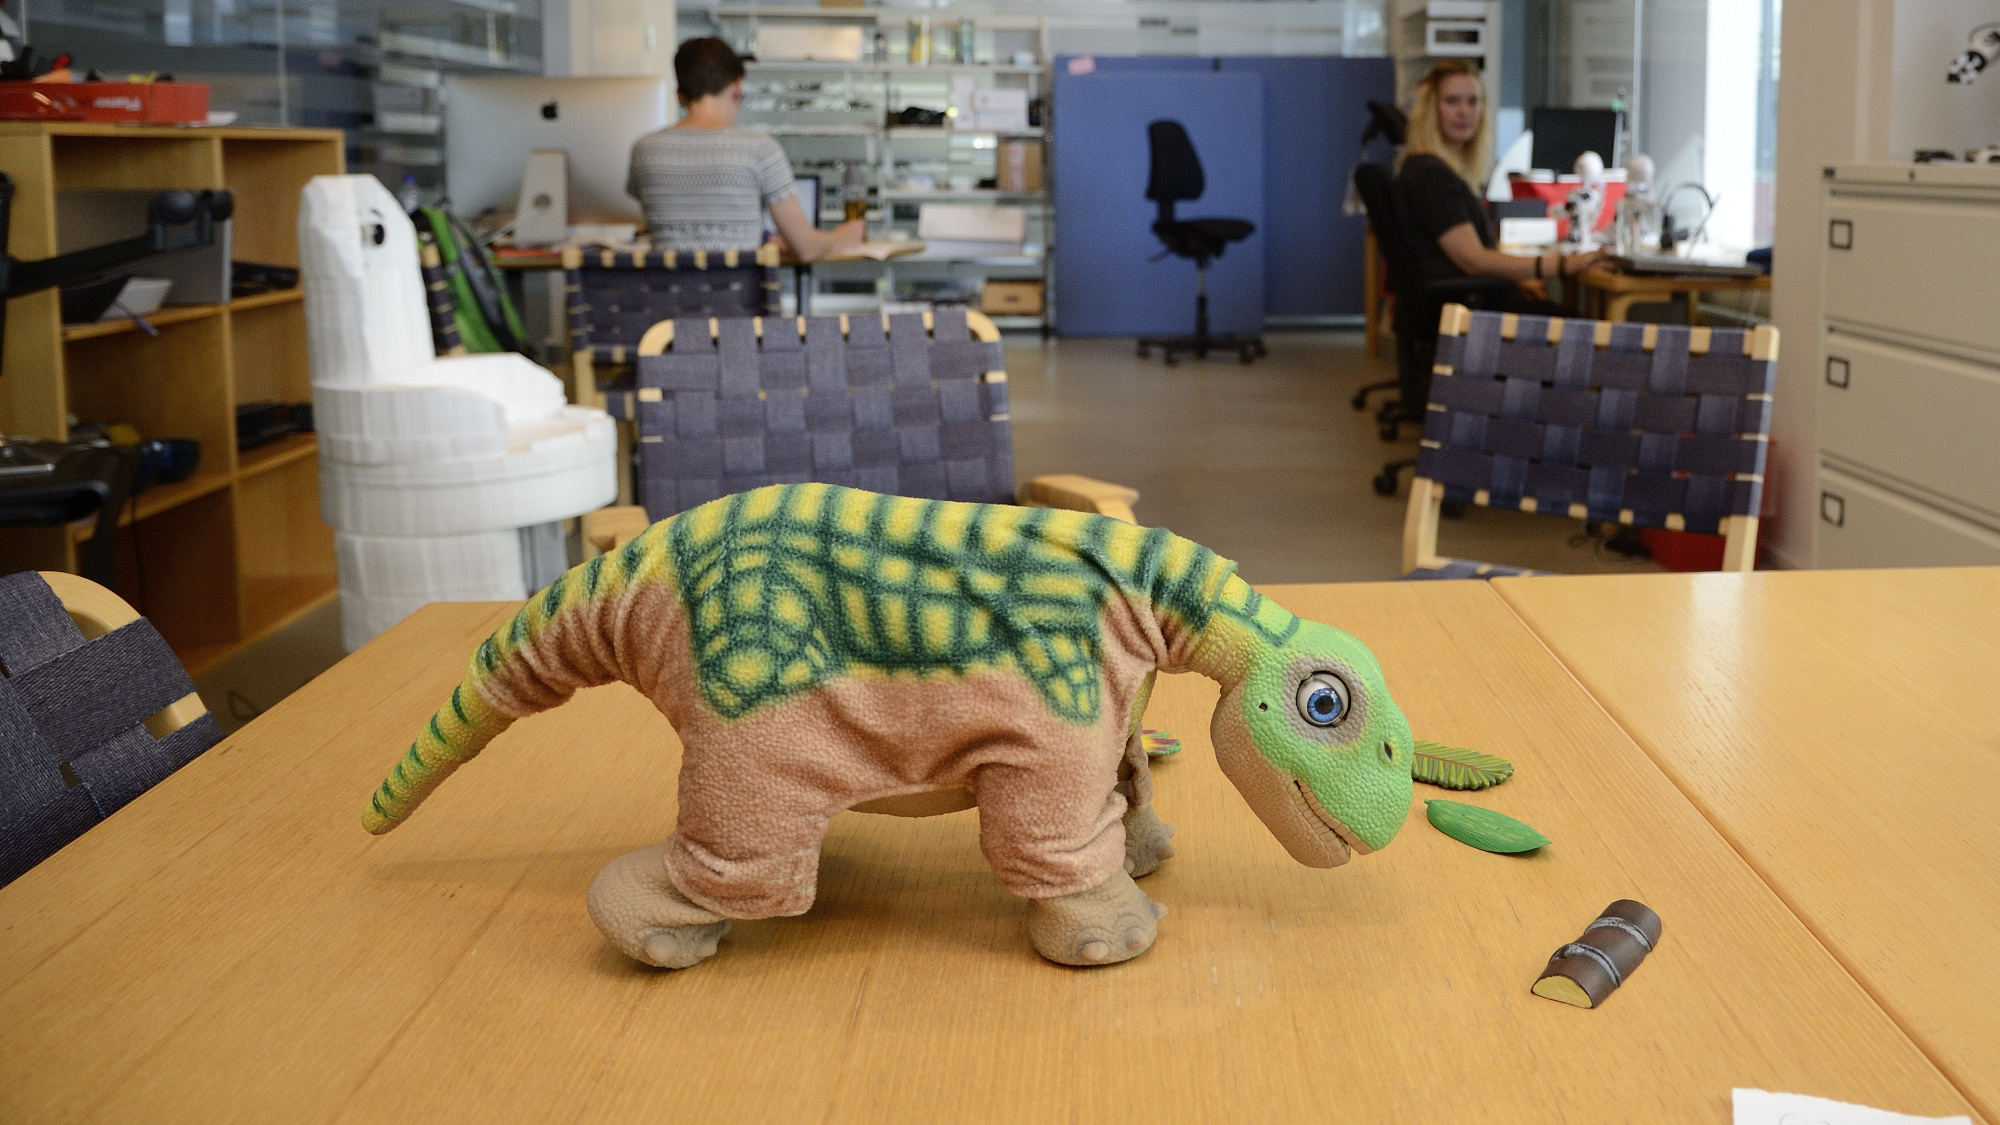 A Pleo robot craving for attention.